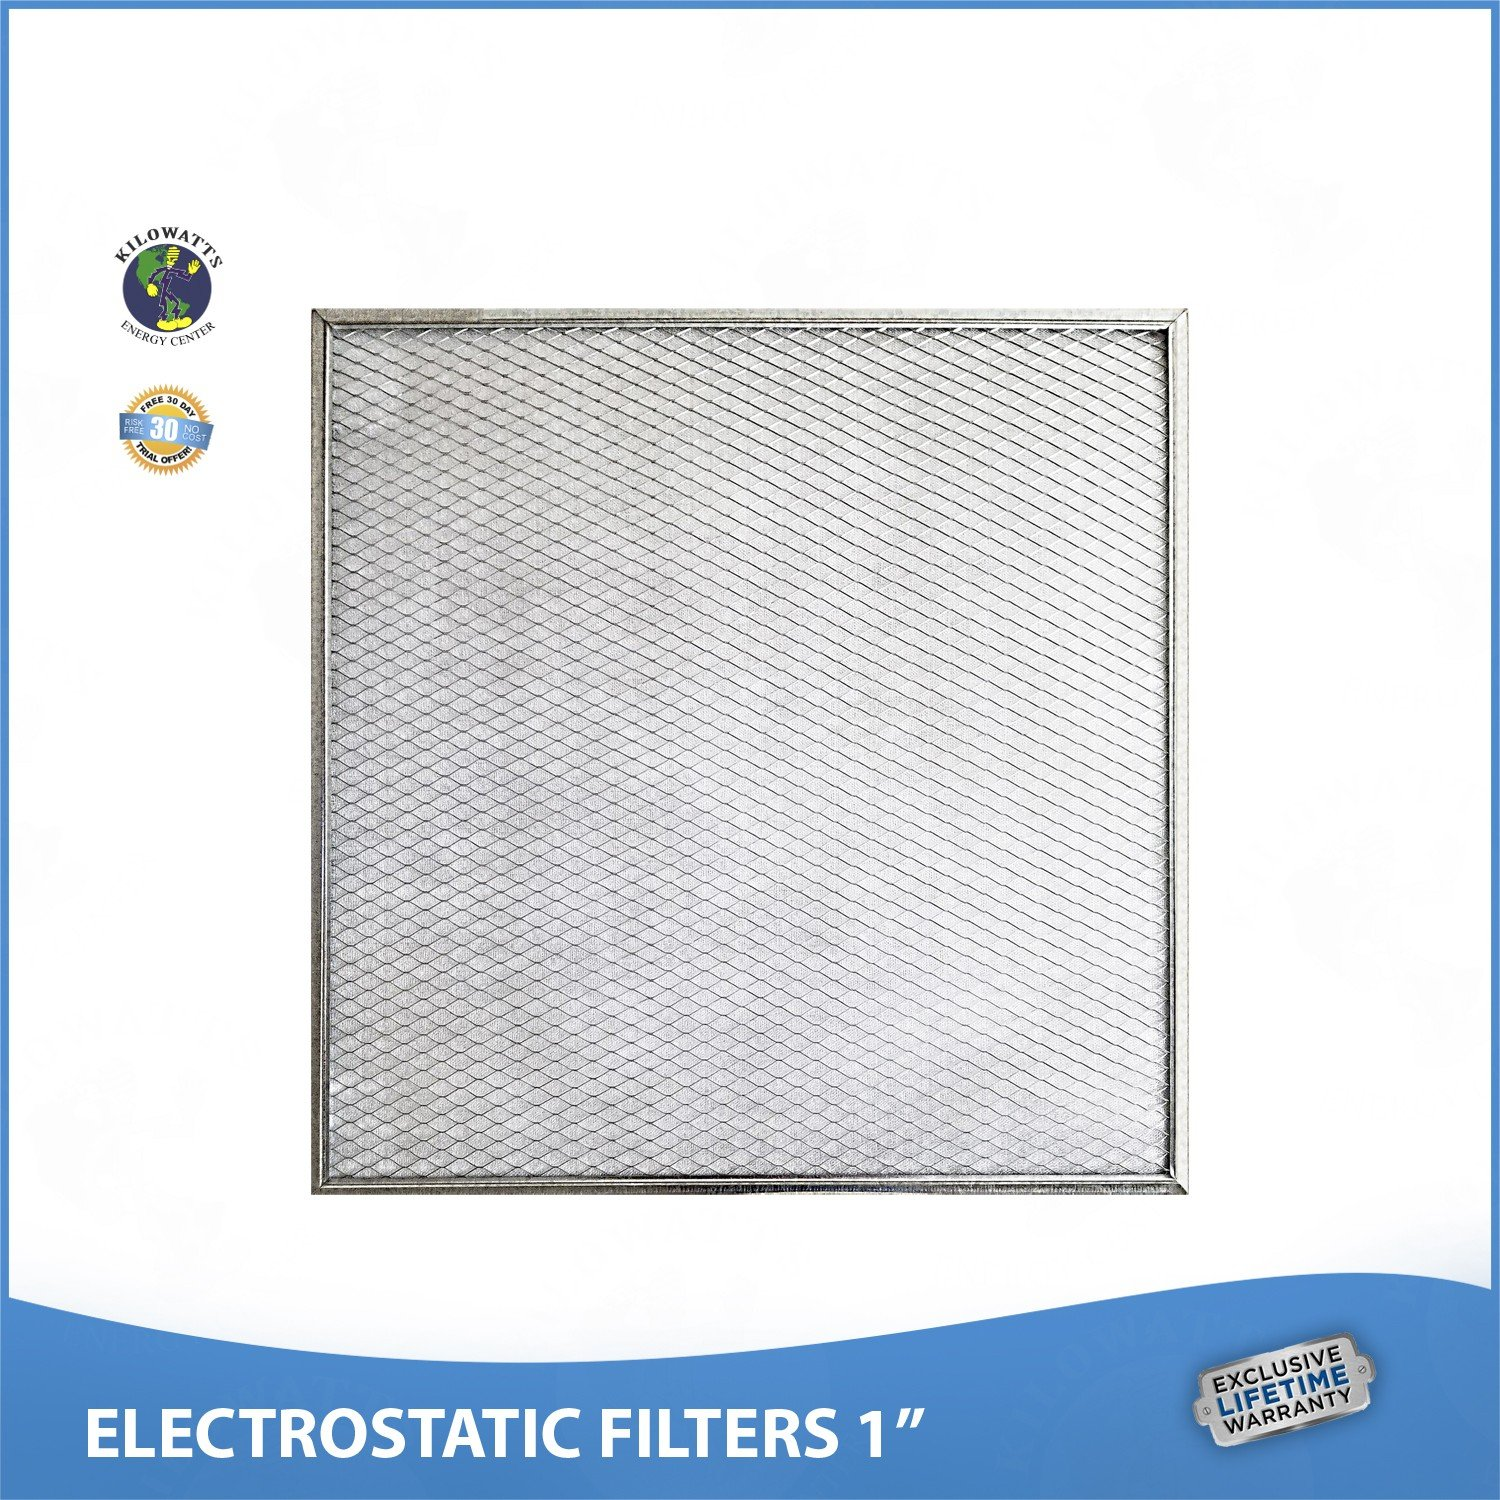 16x32x1 Lifetime Air Filter - Electrostatic Washable Permanent A/C Silver Steel Frame 65% more efficiency